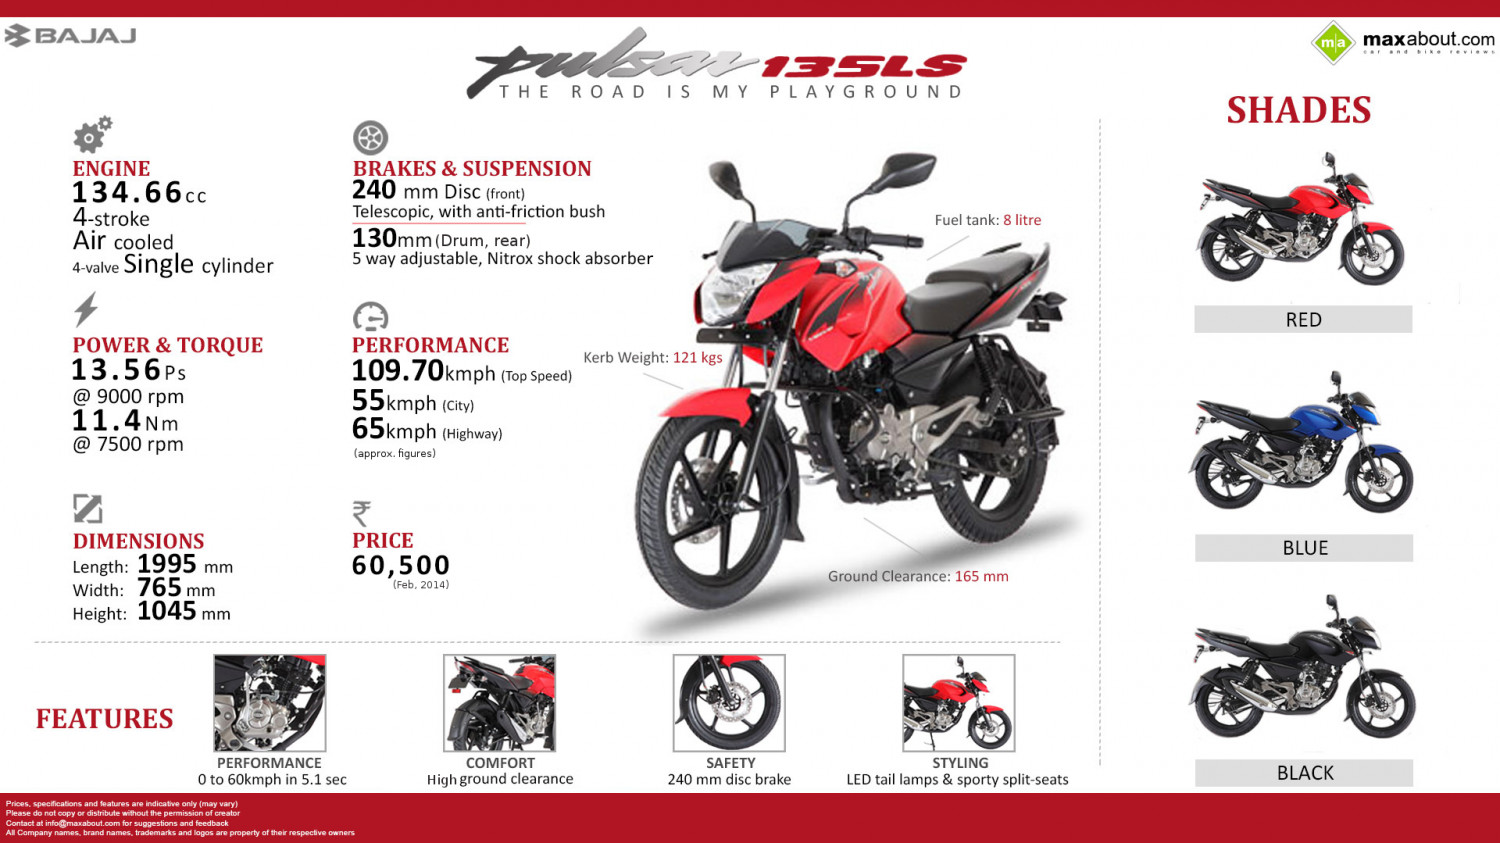 Fast Facts: Bajaj Pulsar 135LS Infographic